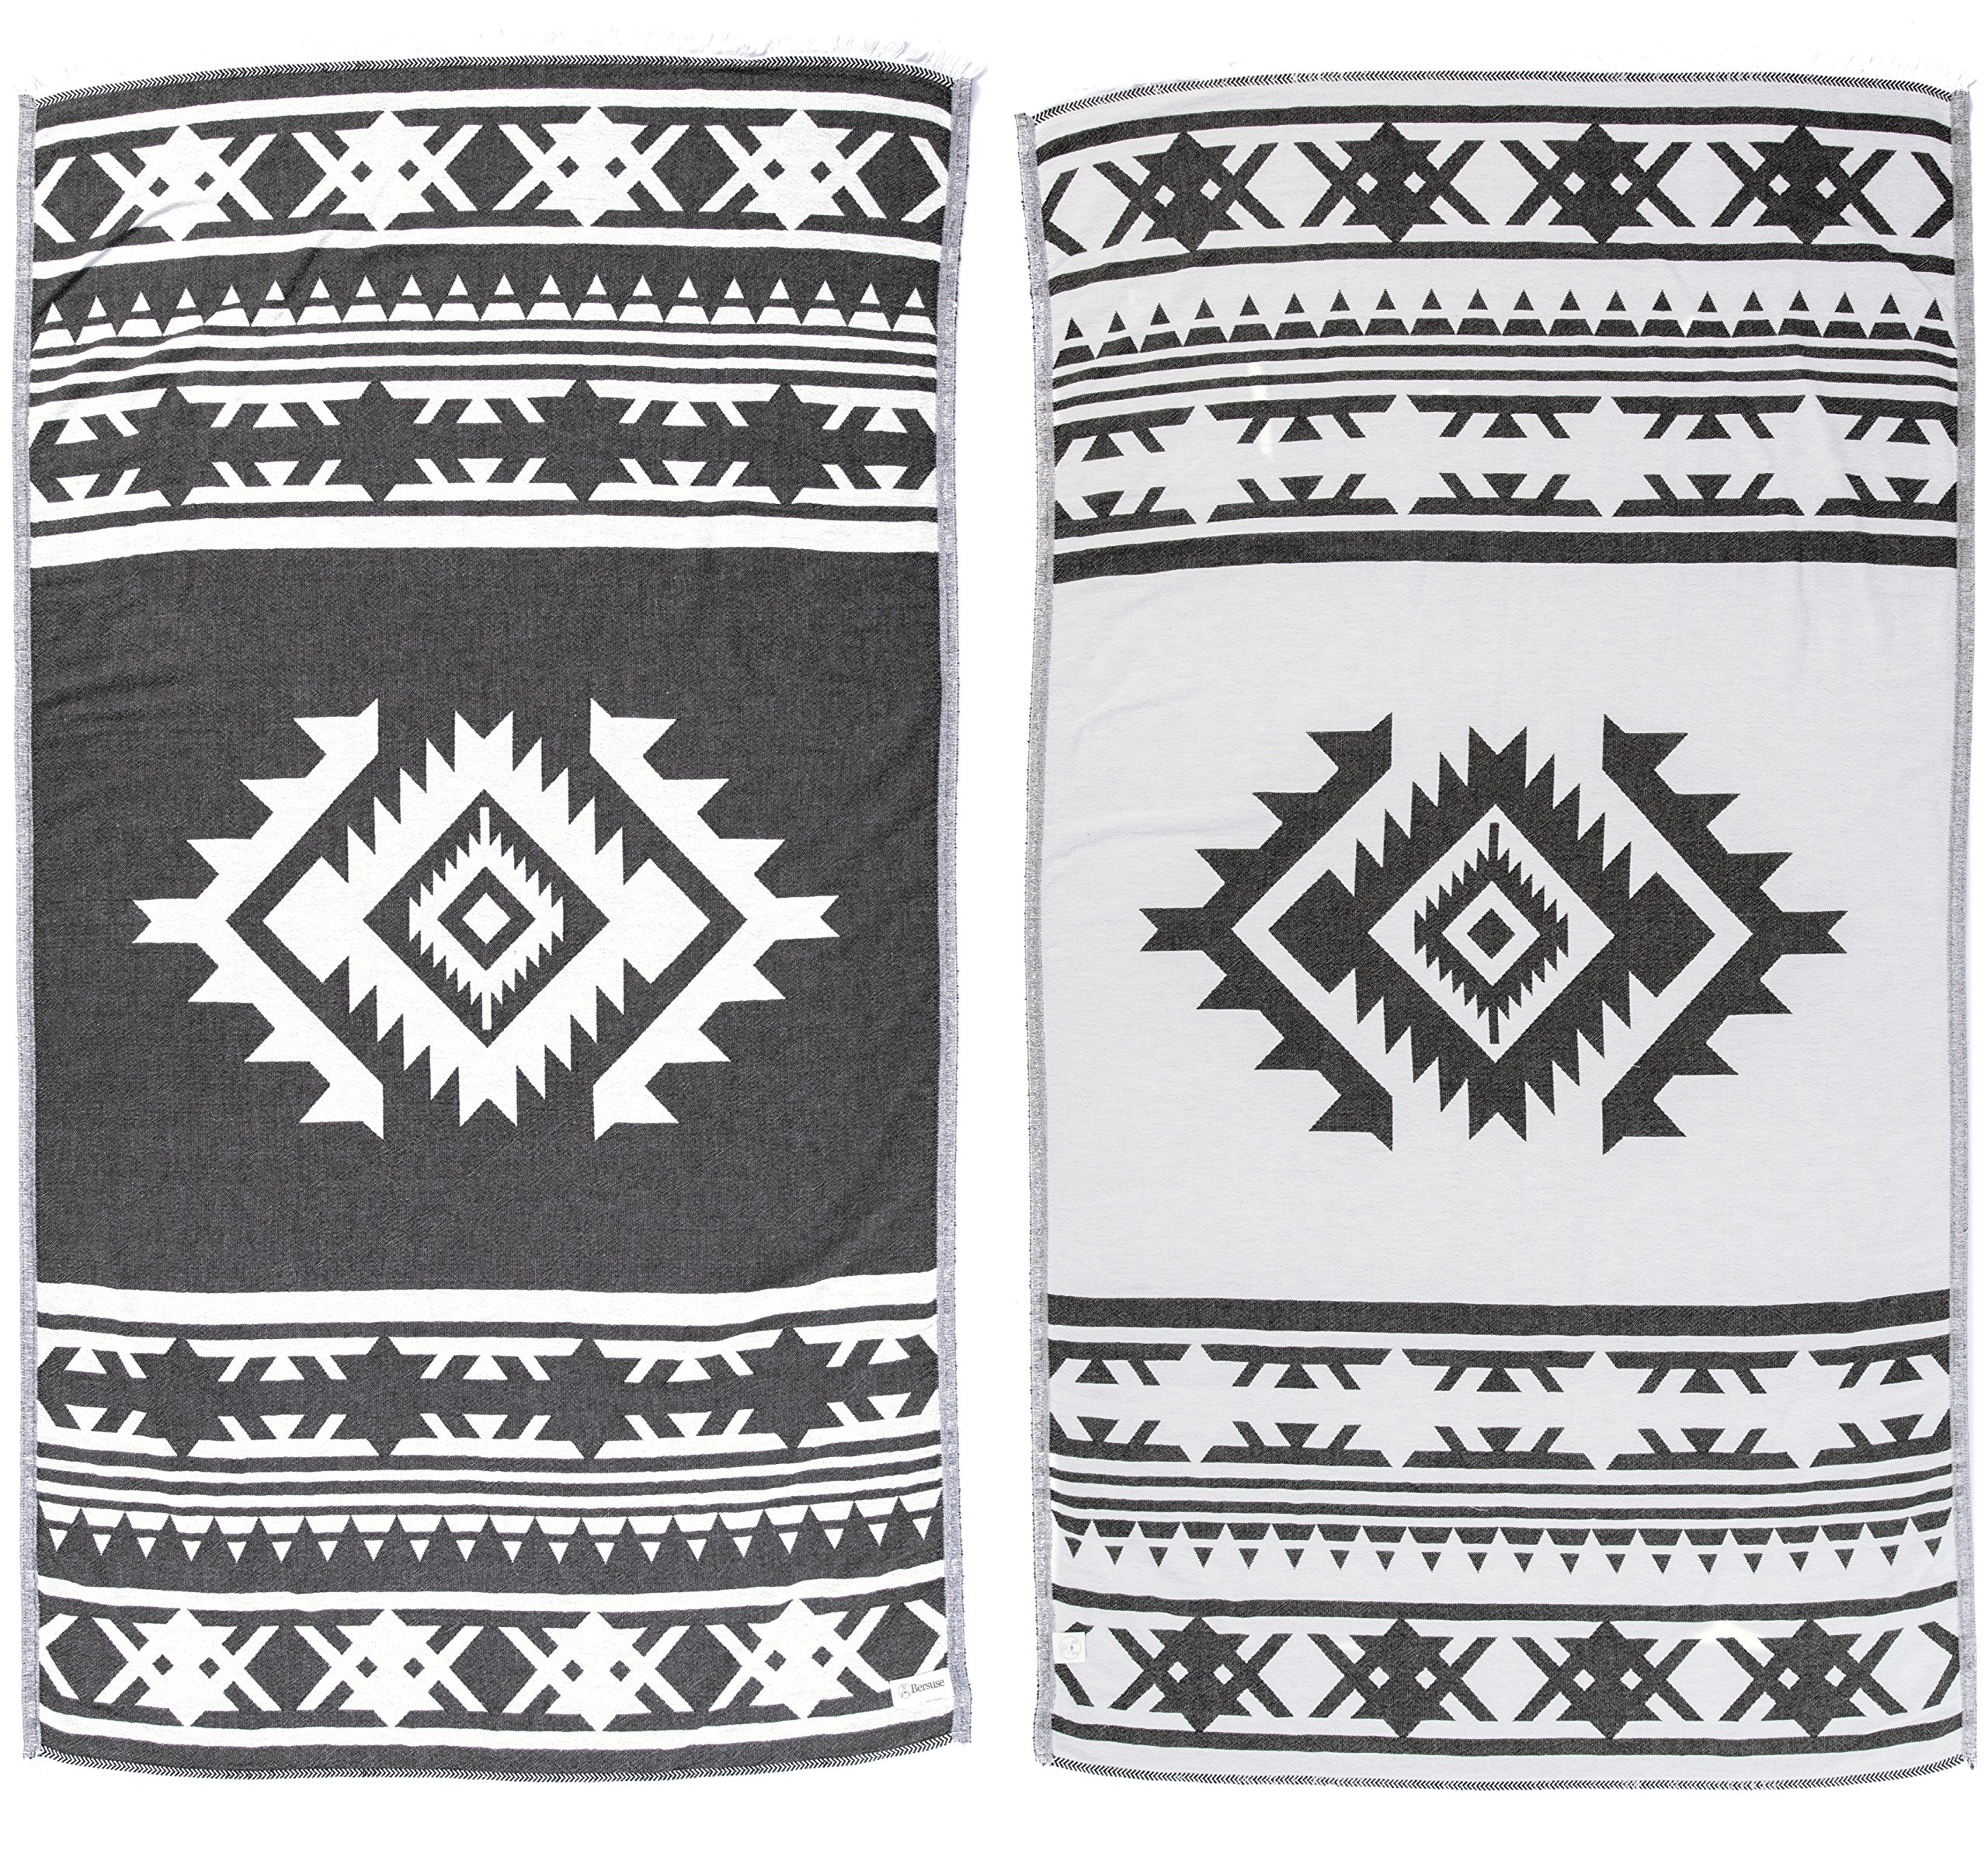 Bersuse 100% Cotton - Cozumel Turkish Towel - Peshtemal Bath Beach Towel - Aztec Pattern - Dual-Layer, Oeko-TEX - 39 x 71 Inches, Black (Set of 3)